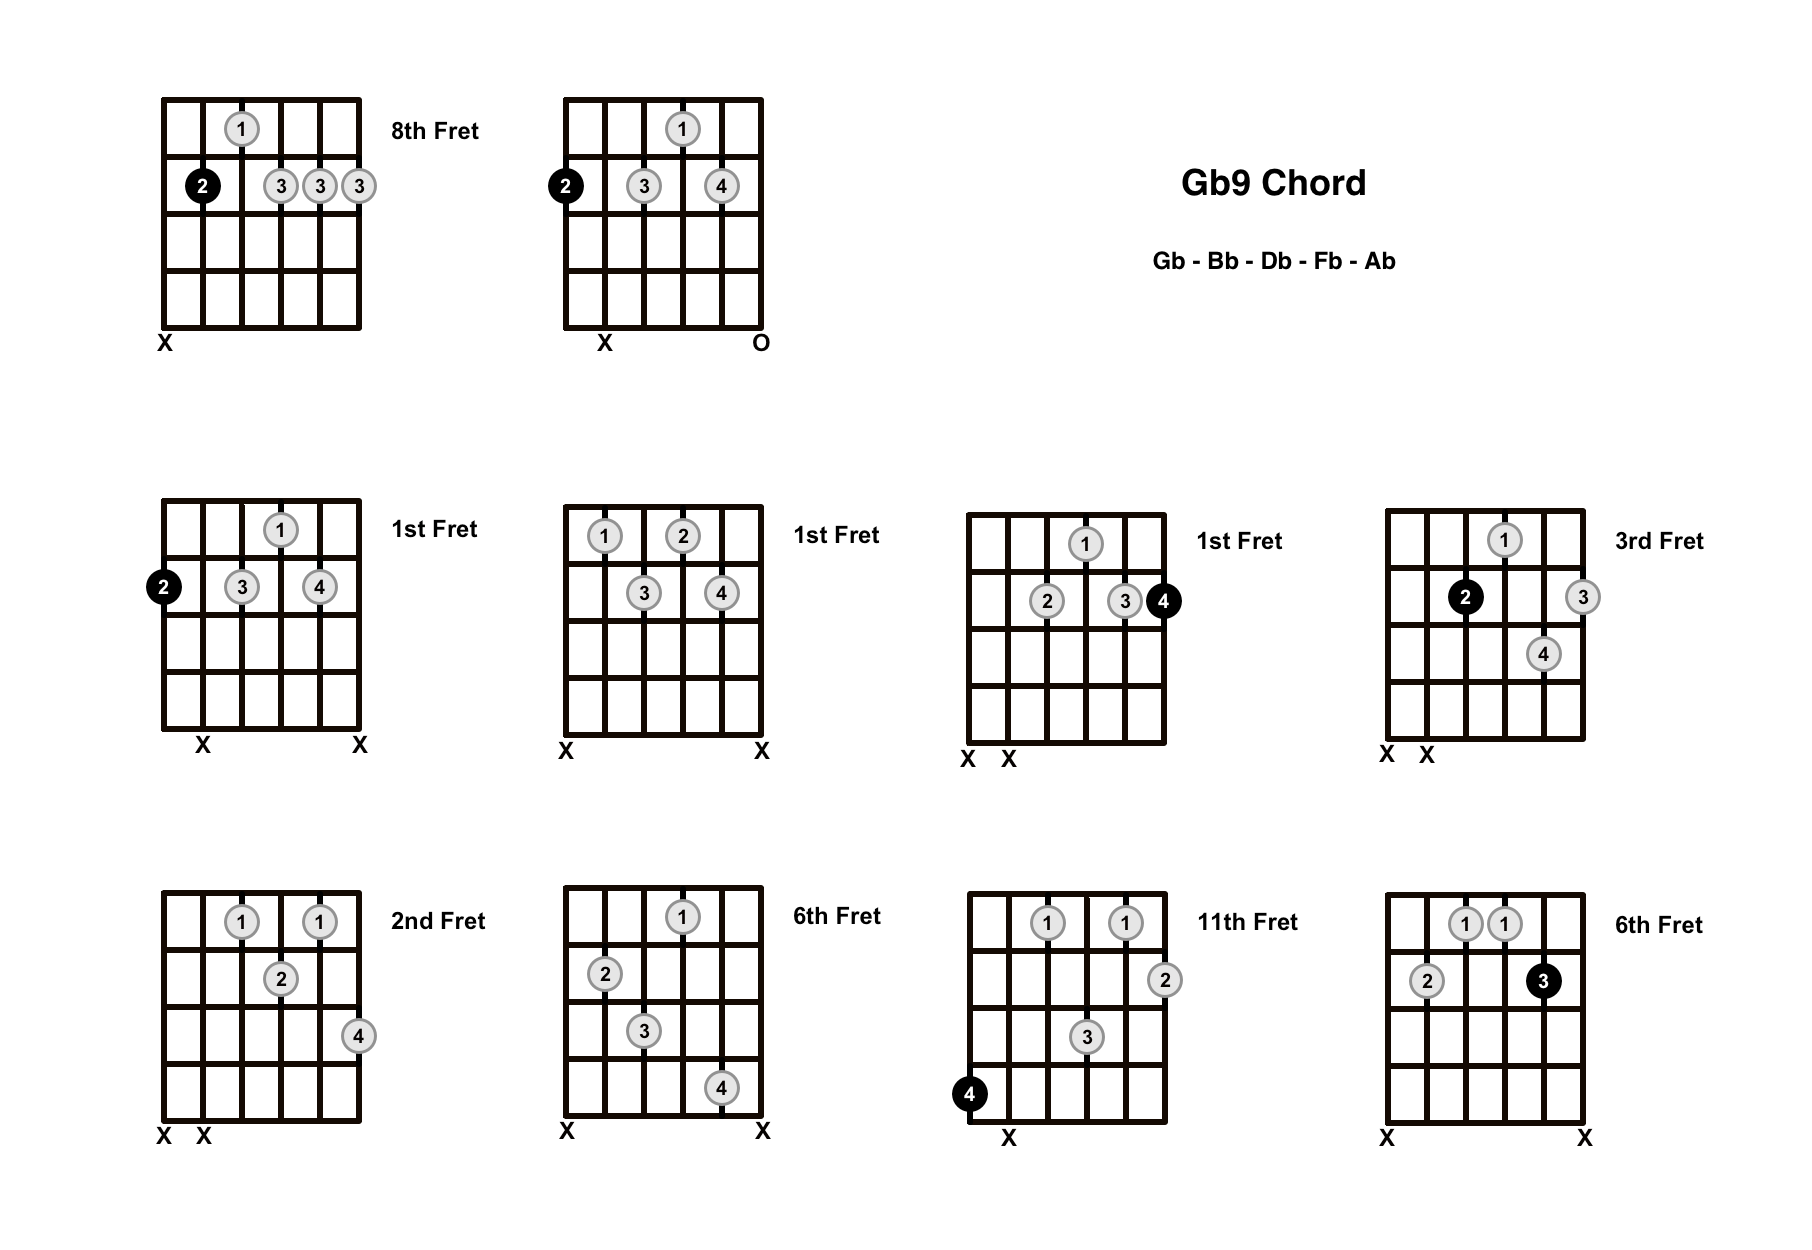 Gb9 Chord On The Guitar (G Flat 9) – Diagrams, Finger Positions and Theory